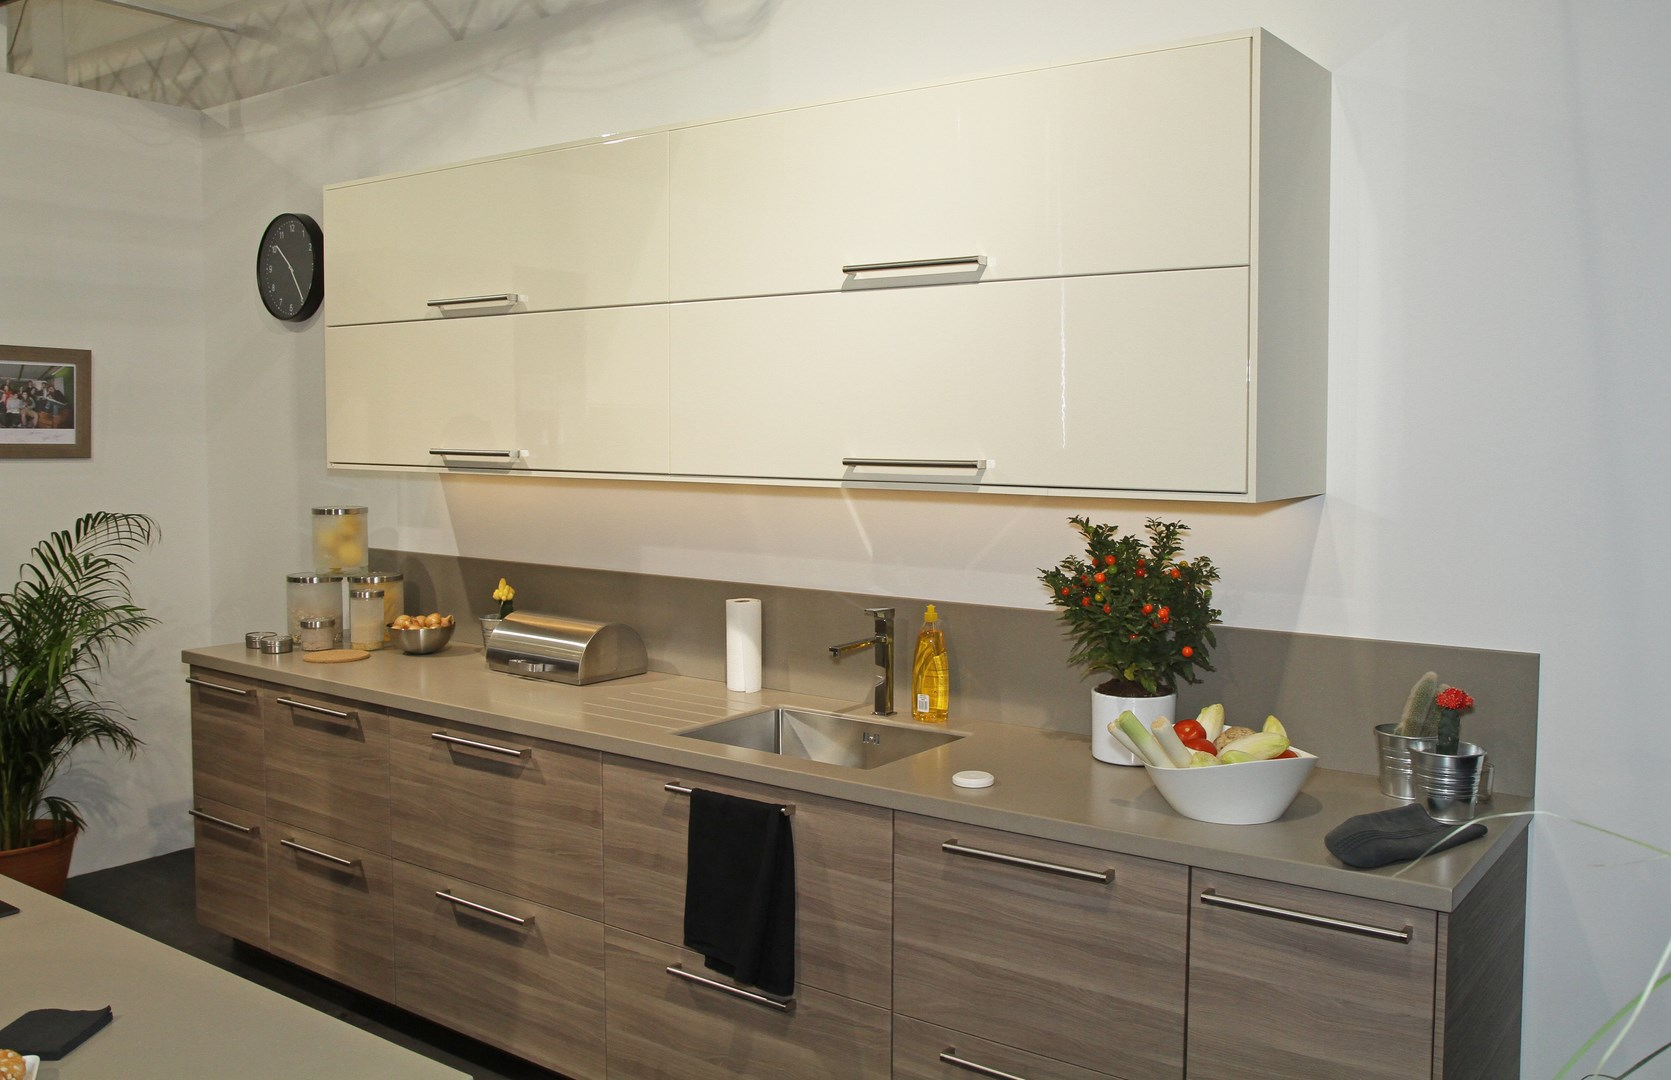 Pinspiration from ikea 39 s new metod kitchen hyttan doors for Ikea kuche metod